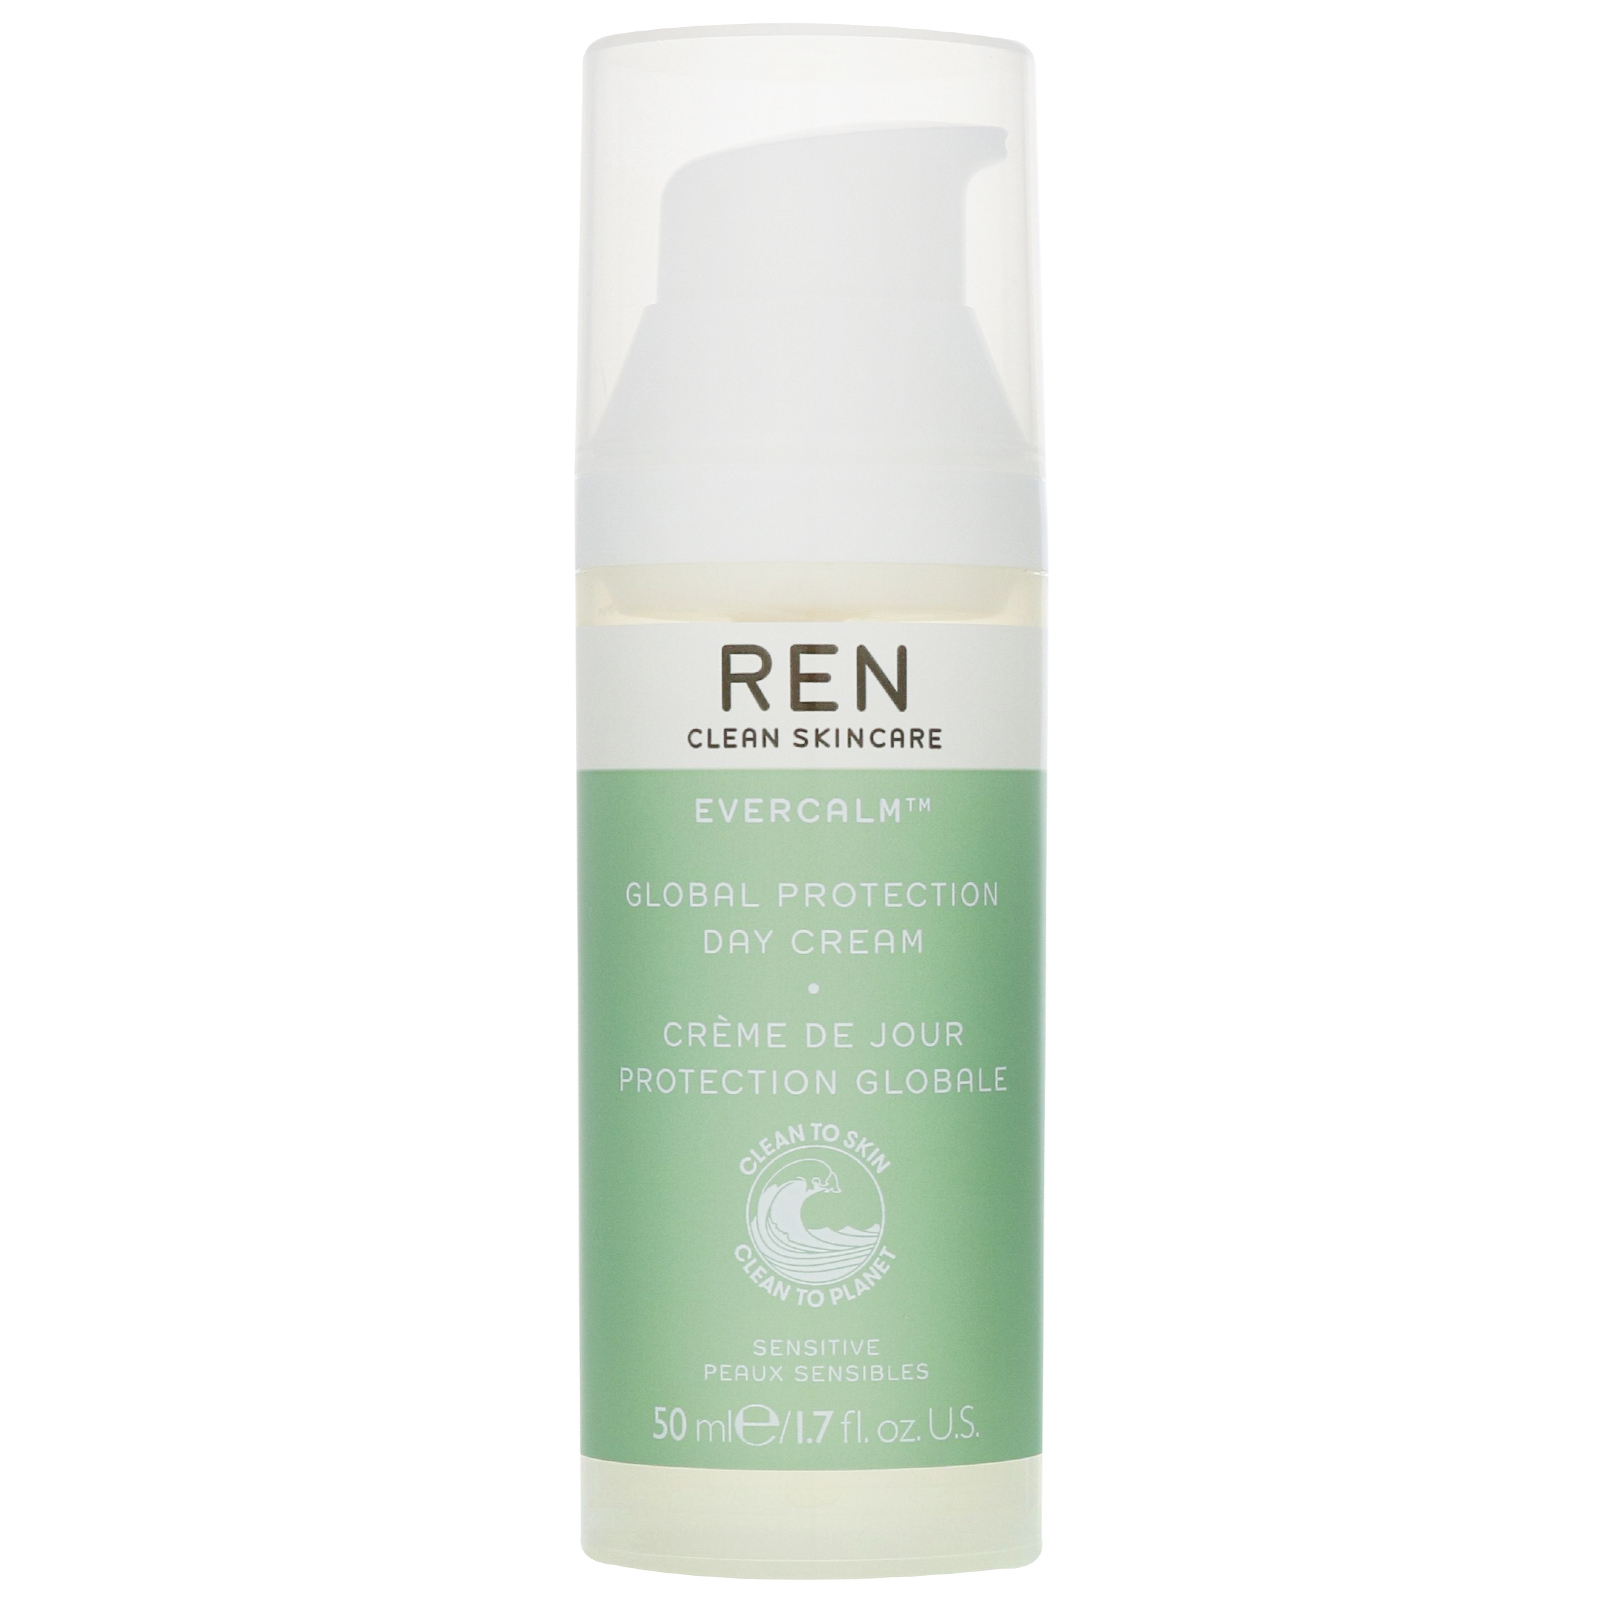 REN Clean Skincare Face Evercalm Global Protection Day Cream 50ml / 1.7 fl.oz.